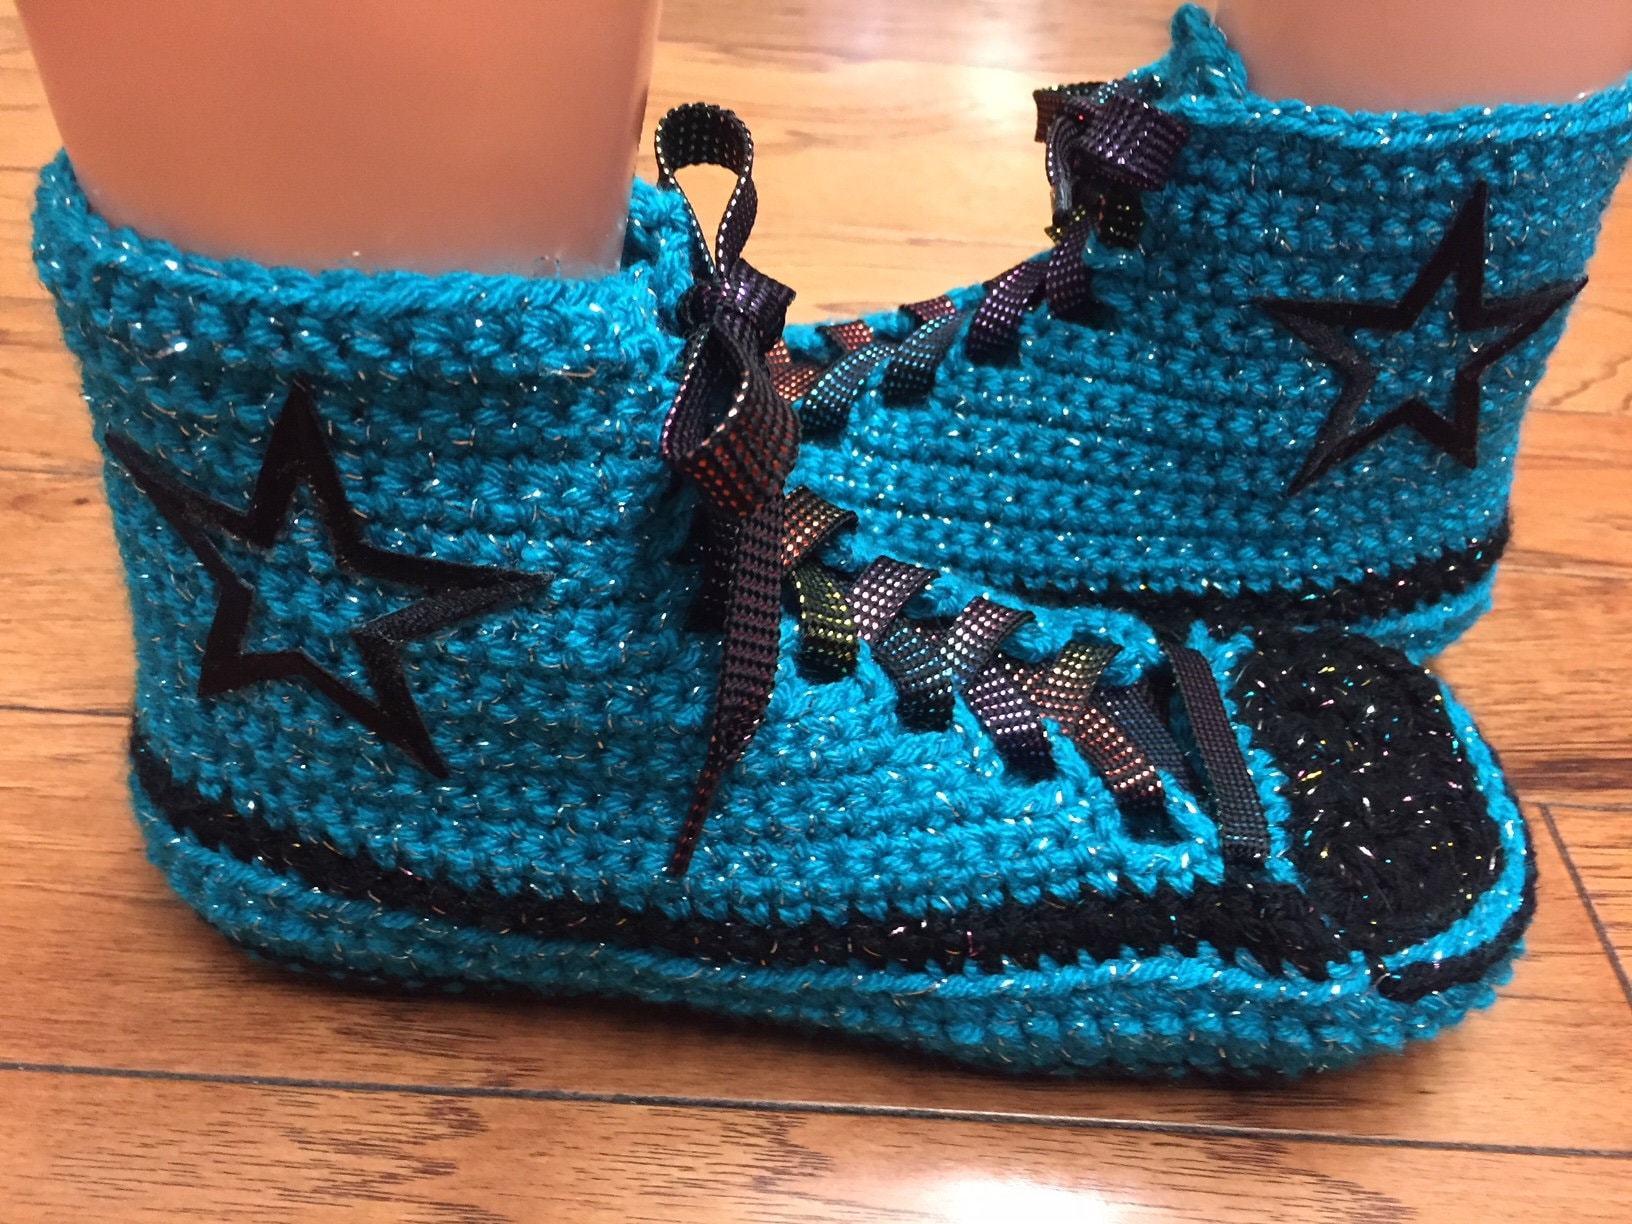 Converse inspired high top tennis shoes sneaker slippers converse converse slippers crocheted converse converse slippers crochet blue converse Womens 8-10 380 f69431